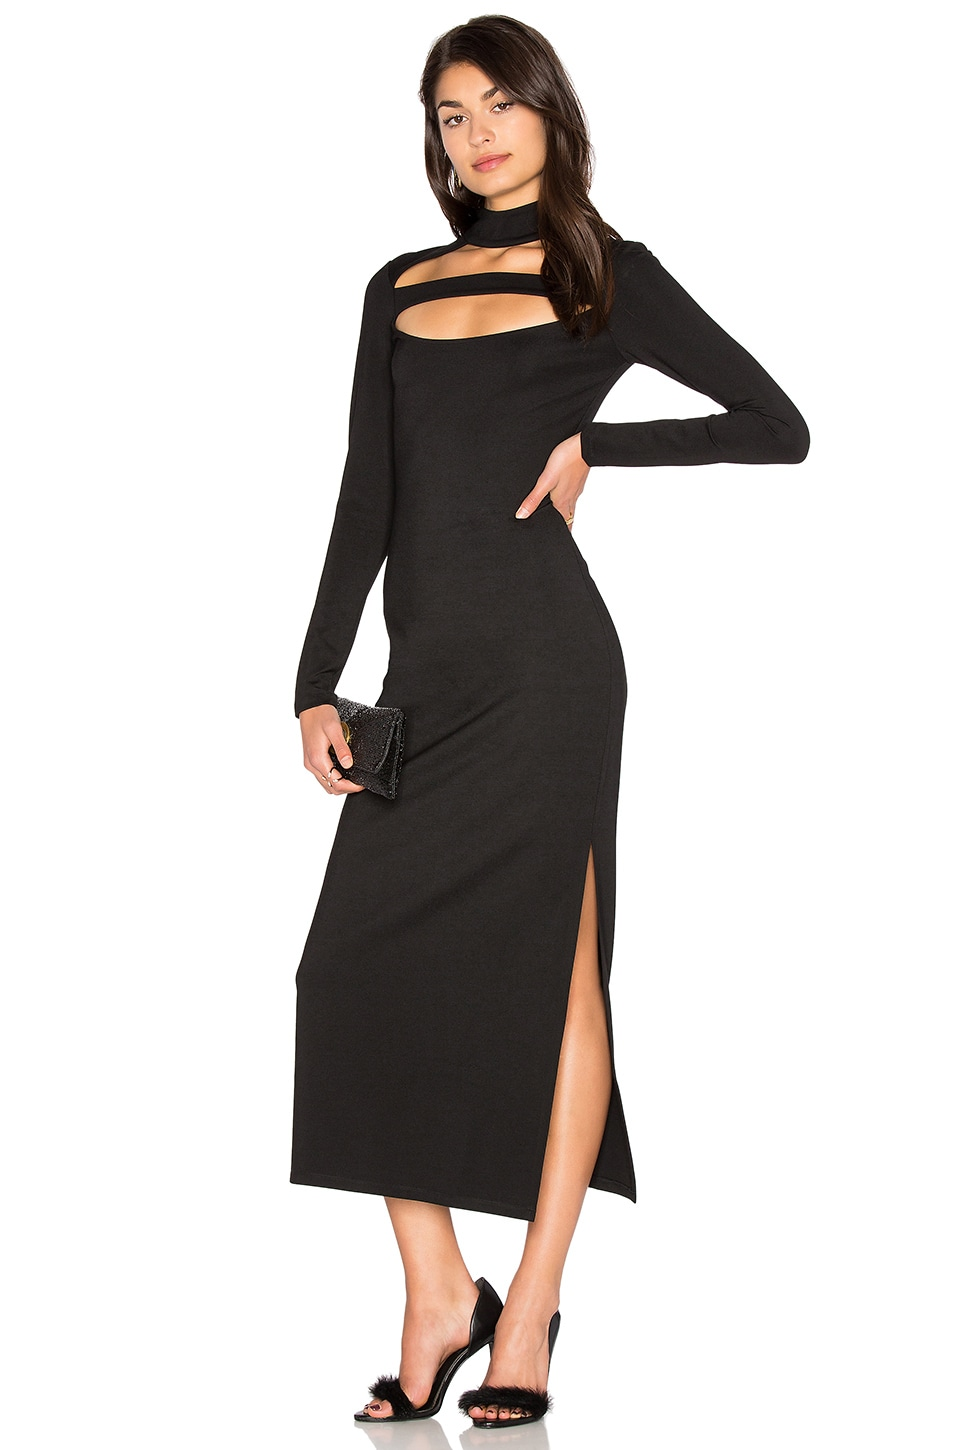 Photo of Dress 81 by Lpa on sale